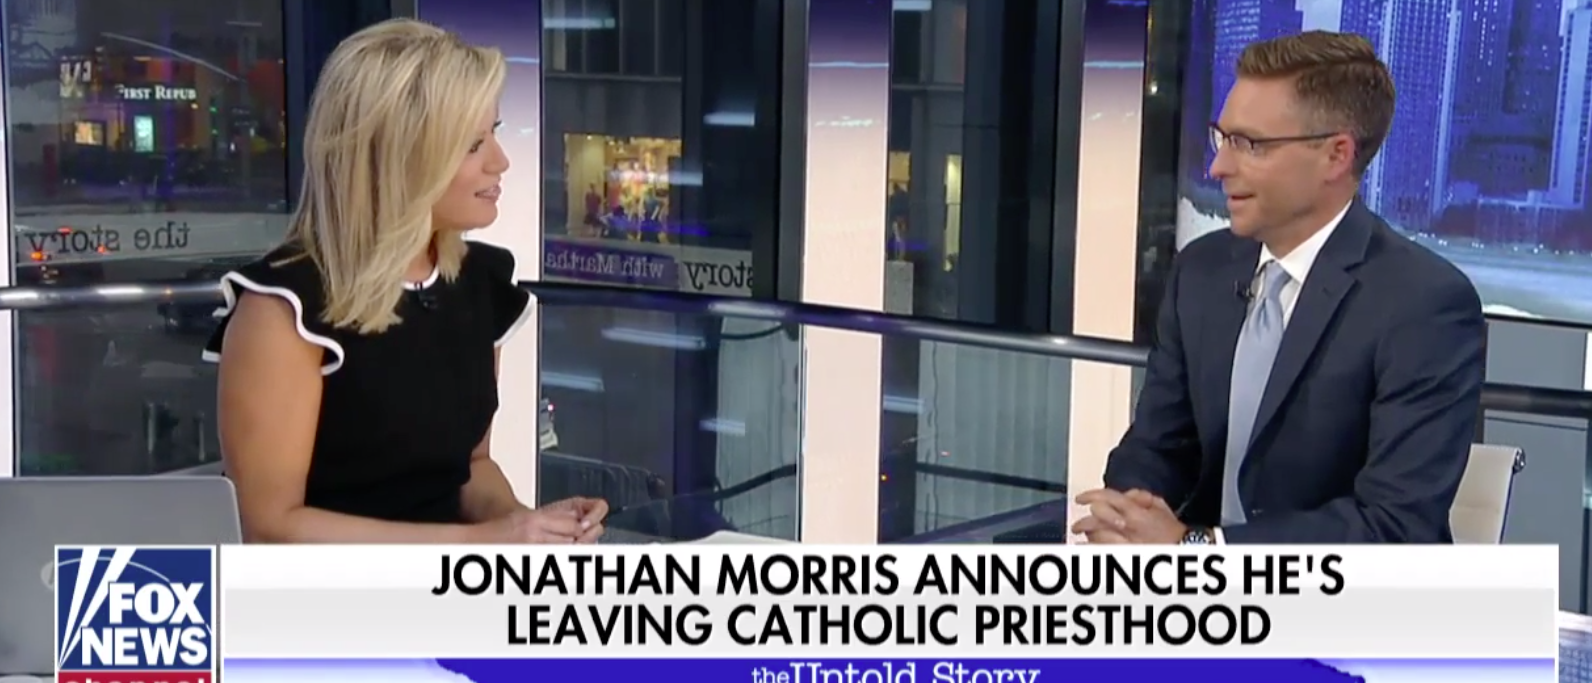 Jonathan Morris, a priest and on-air Fox News Commentator for 14 years, announced Monday he is leaving the priesthood. Photo screenshot.